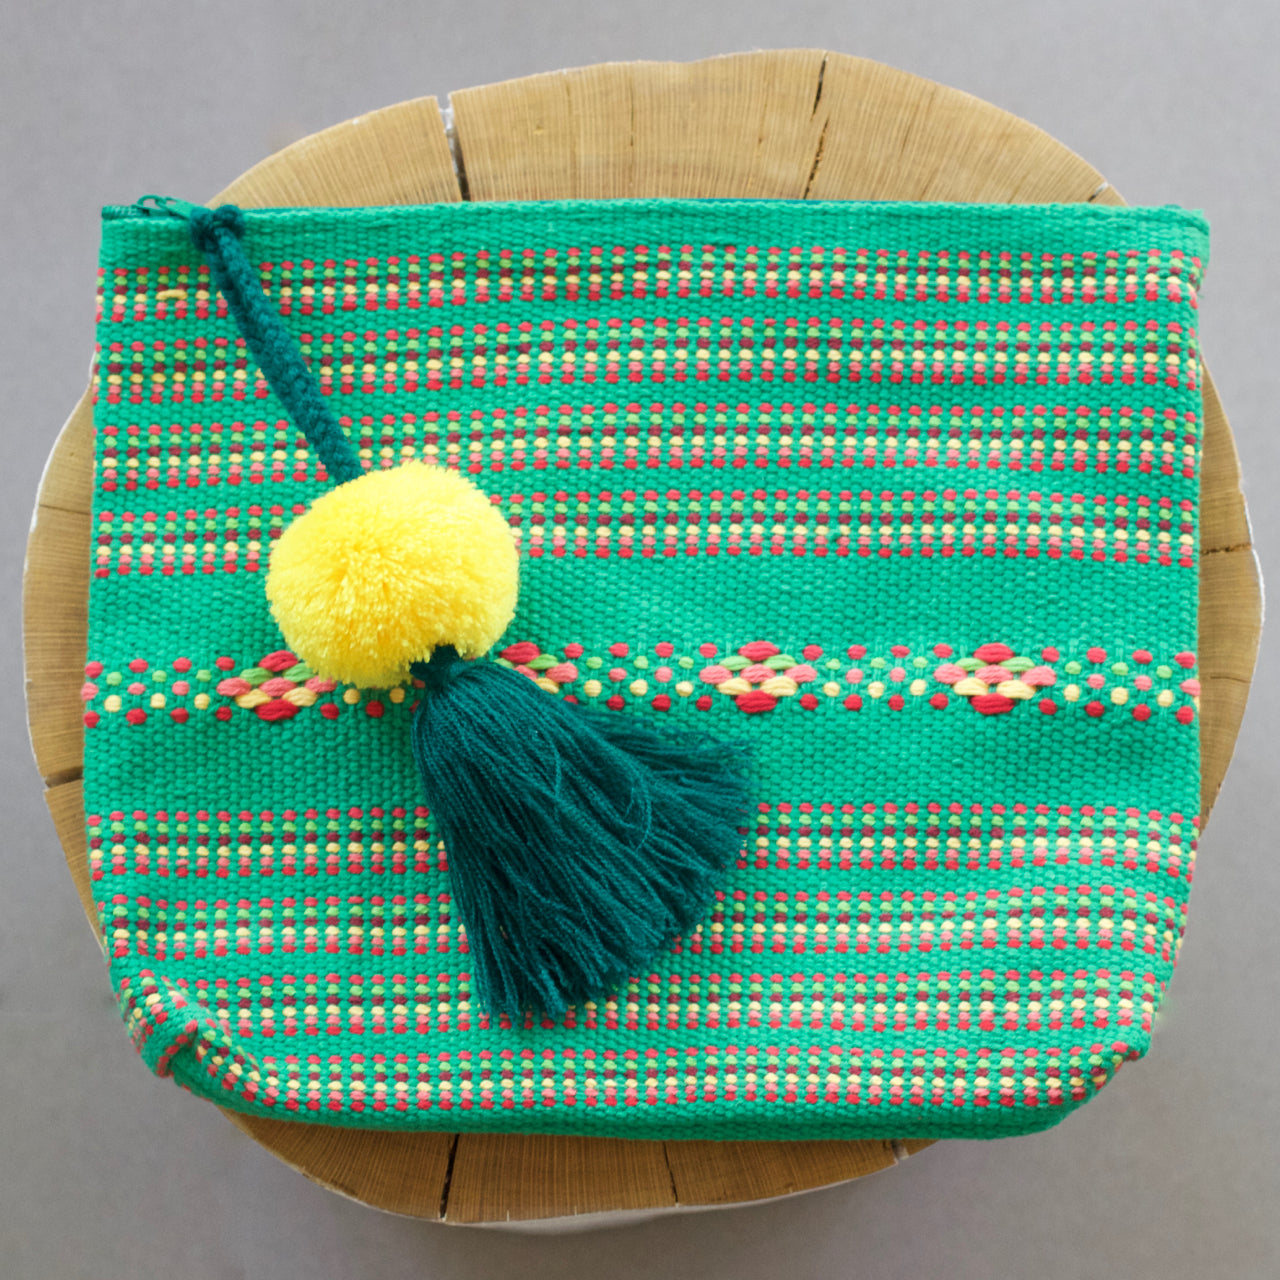 Jalieza Striped Clutch 14  Clutch Green - Cielo Collective handmade Mexico Guatemala